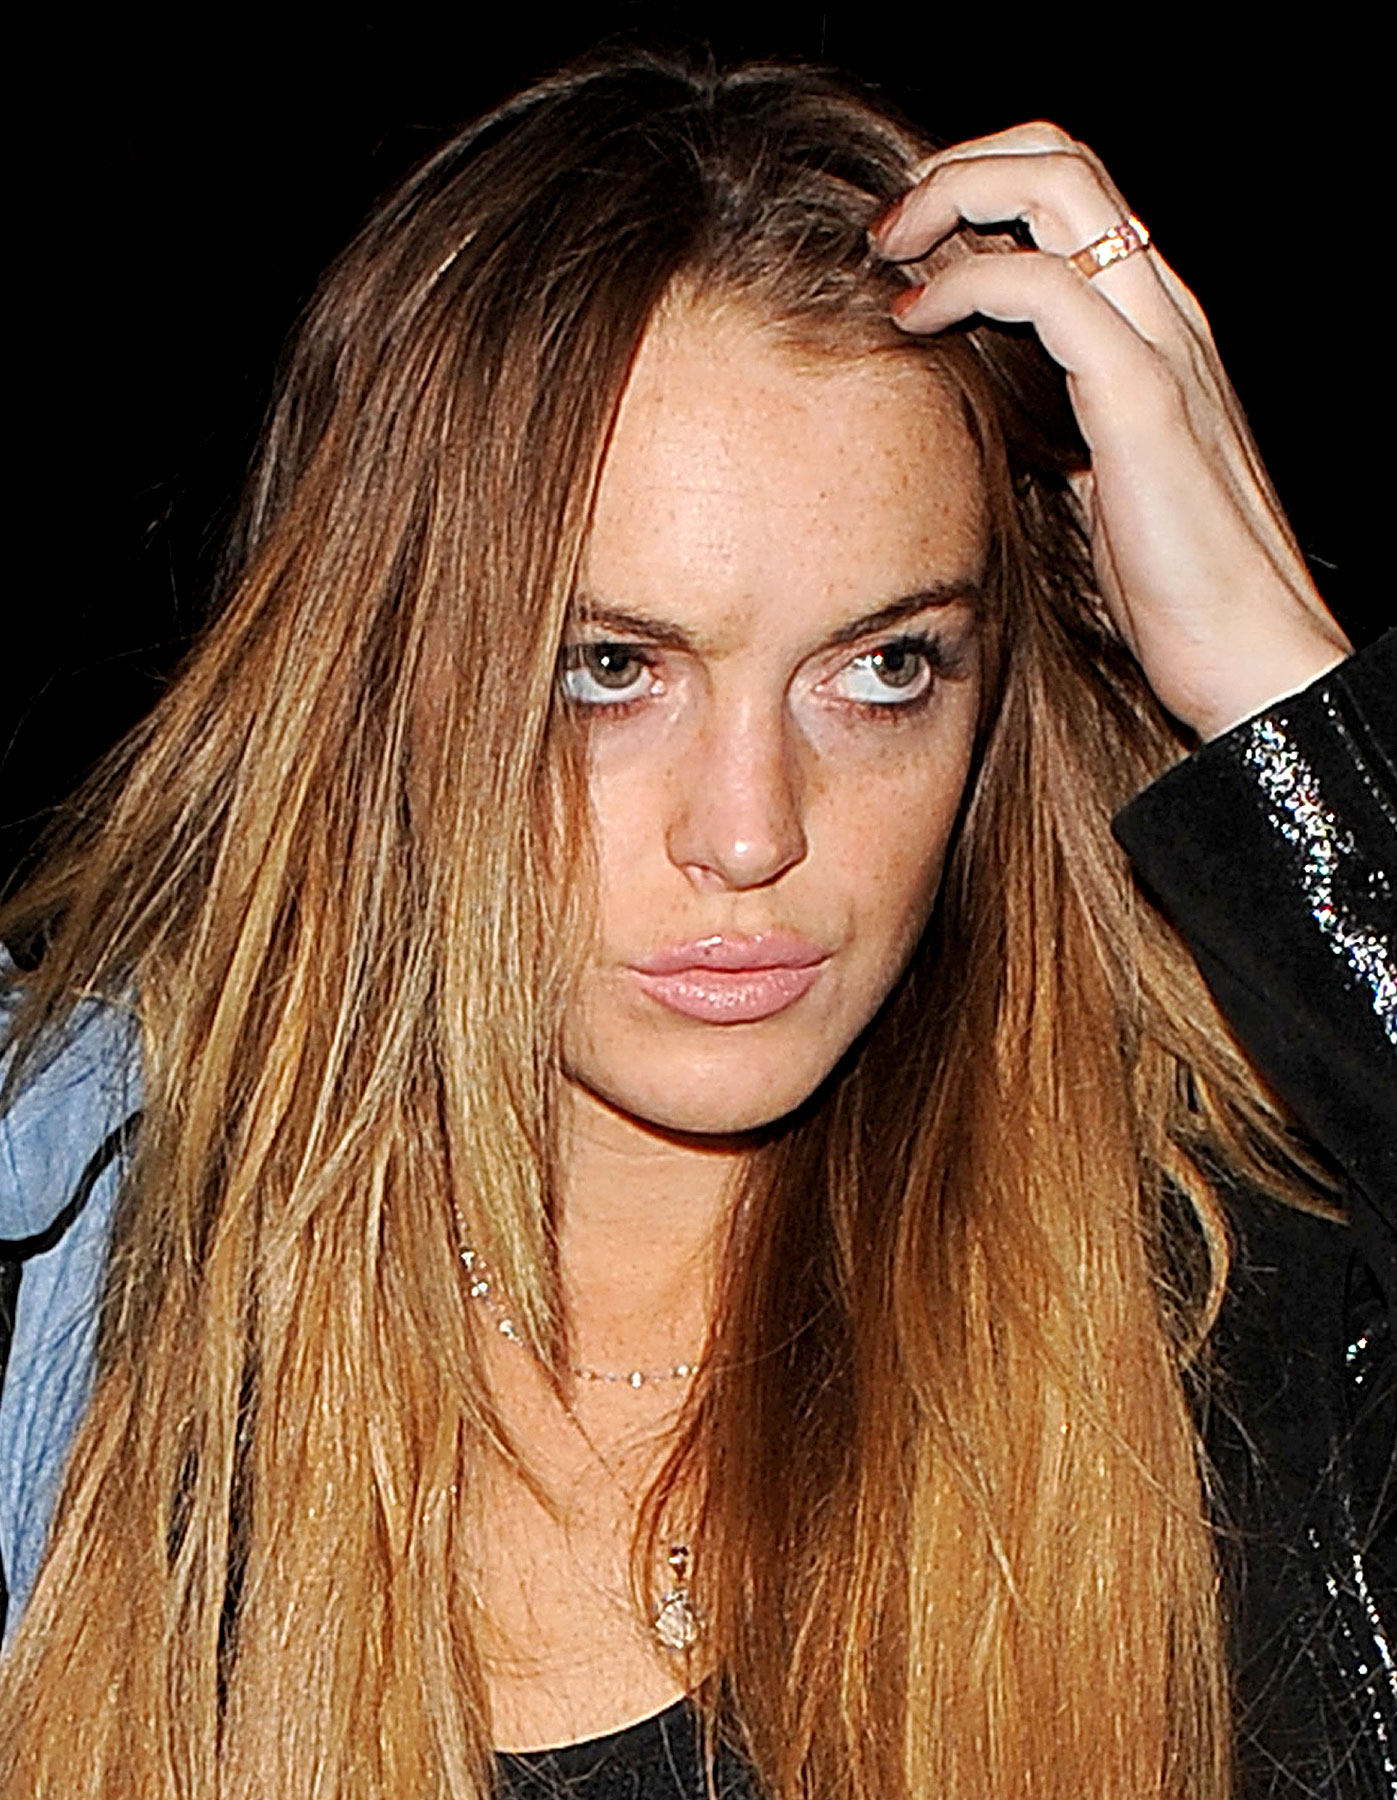 PHOTO GALLERY: The Many Faces Of Lohan